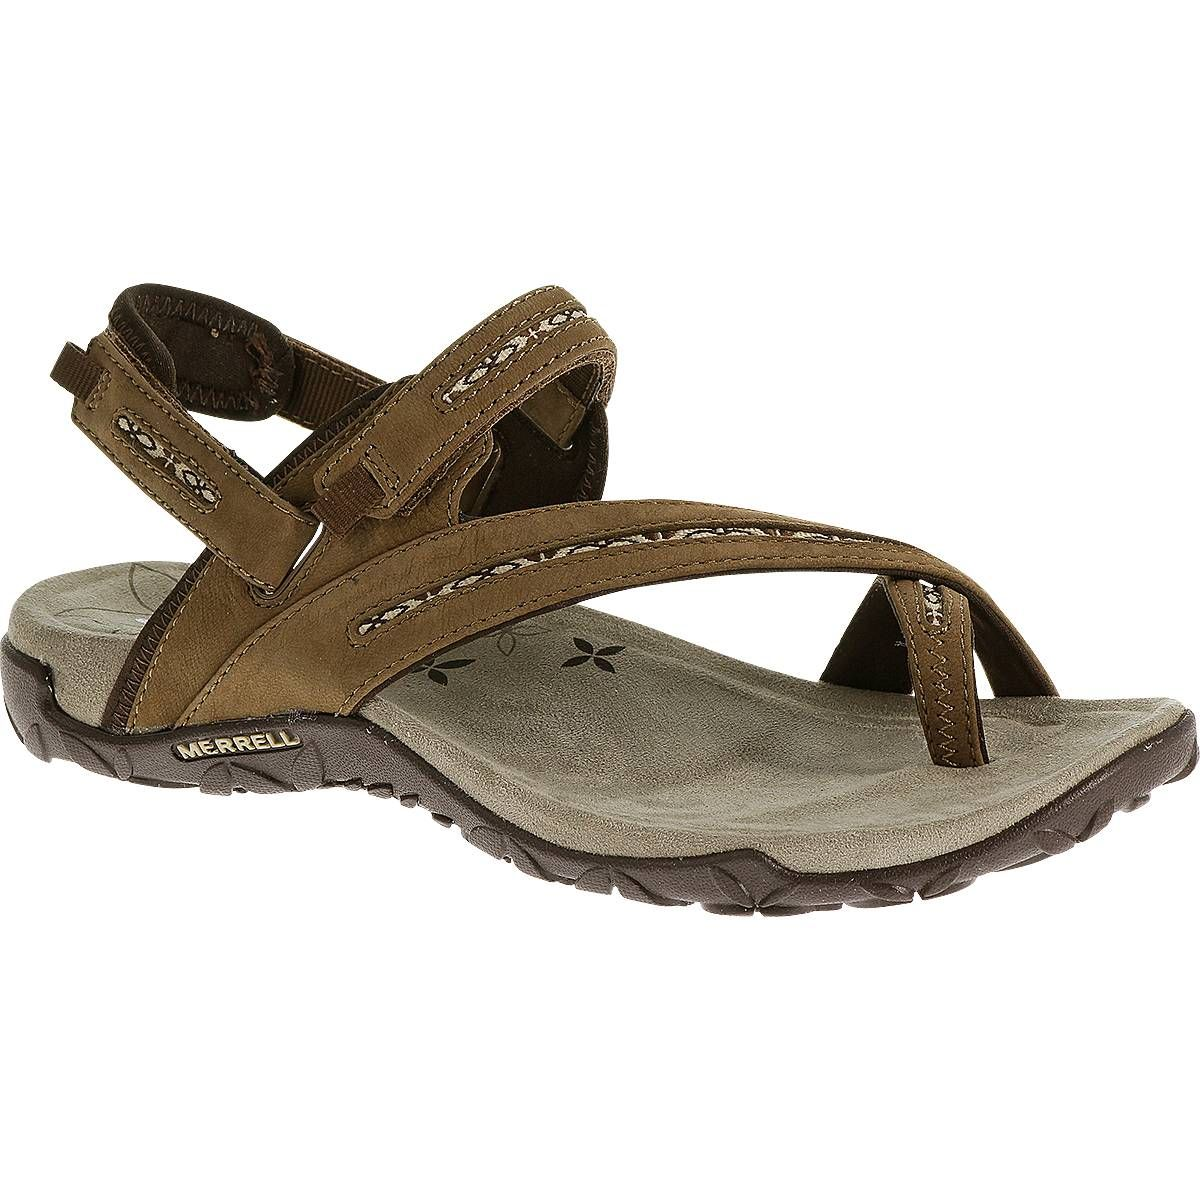 Look at this Merrell Dark Earth Terran Convertible Leather Sandal on today!